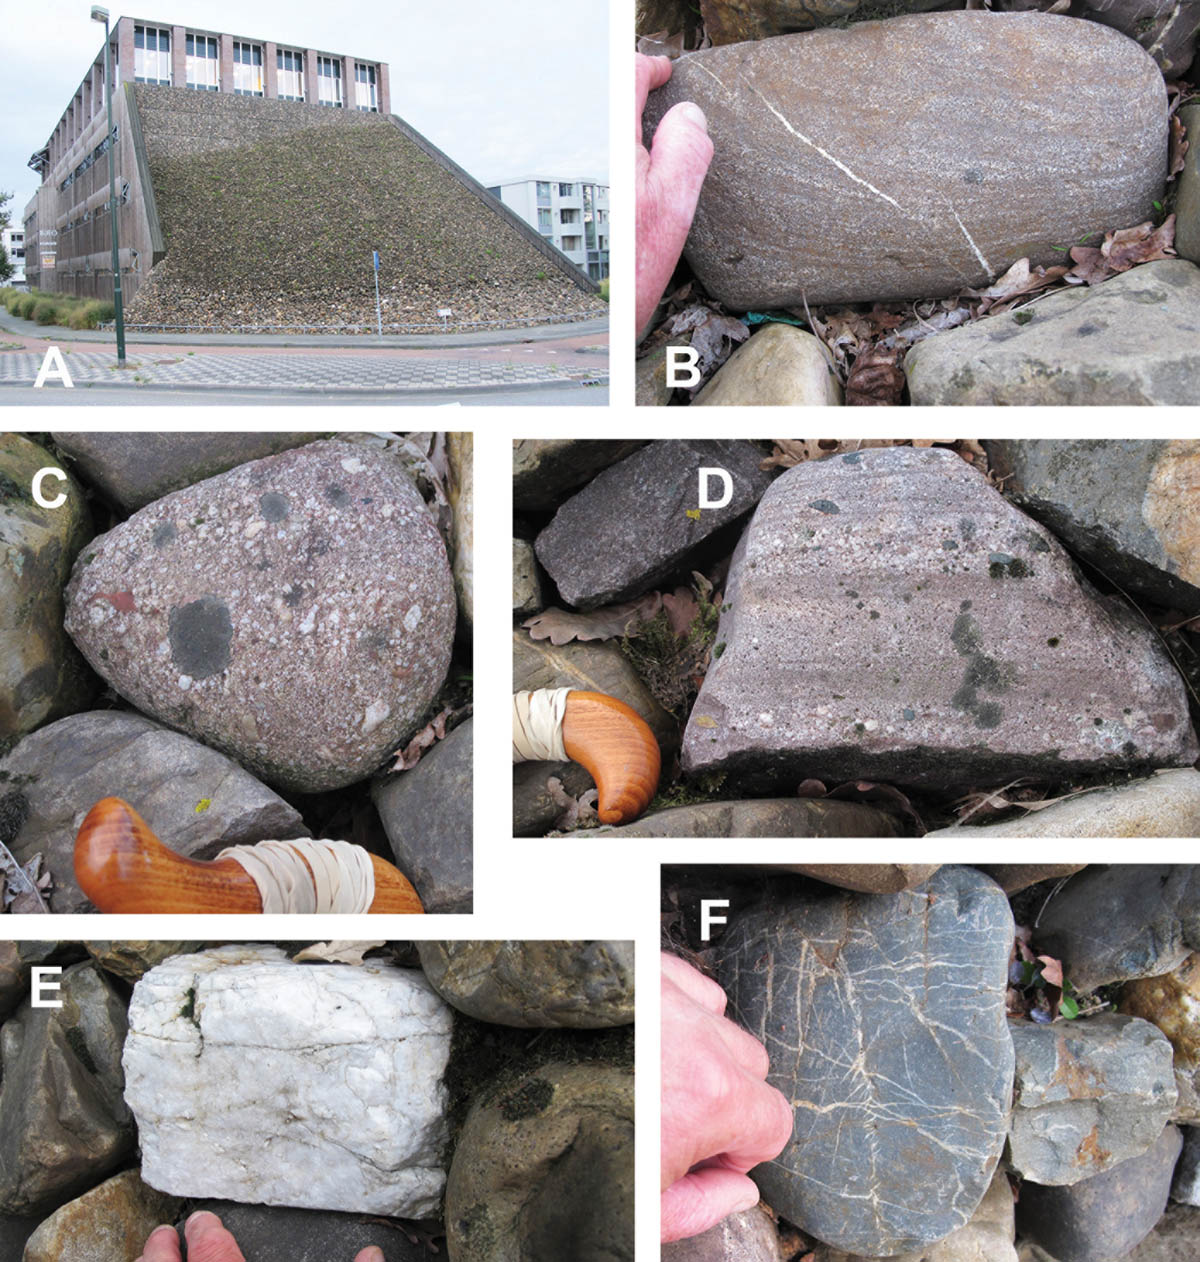 Urban geology: the Boxtel wall game